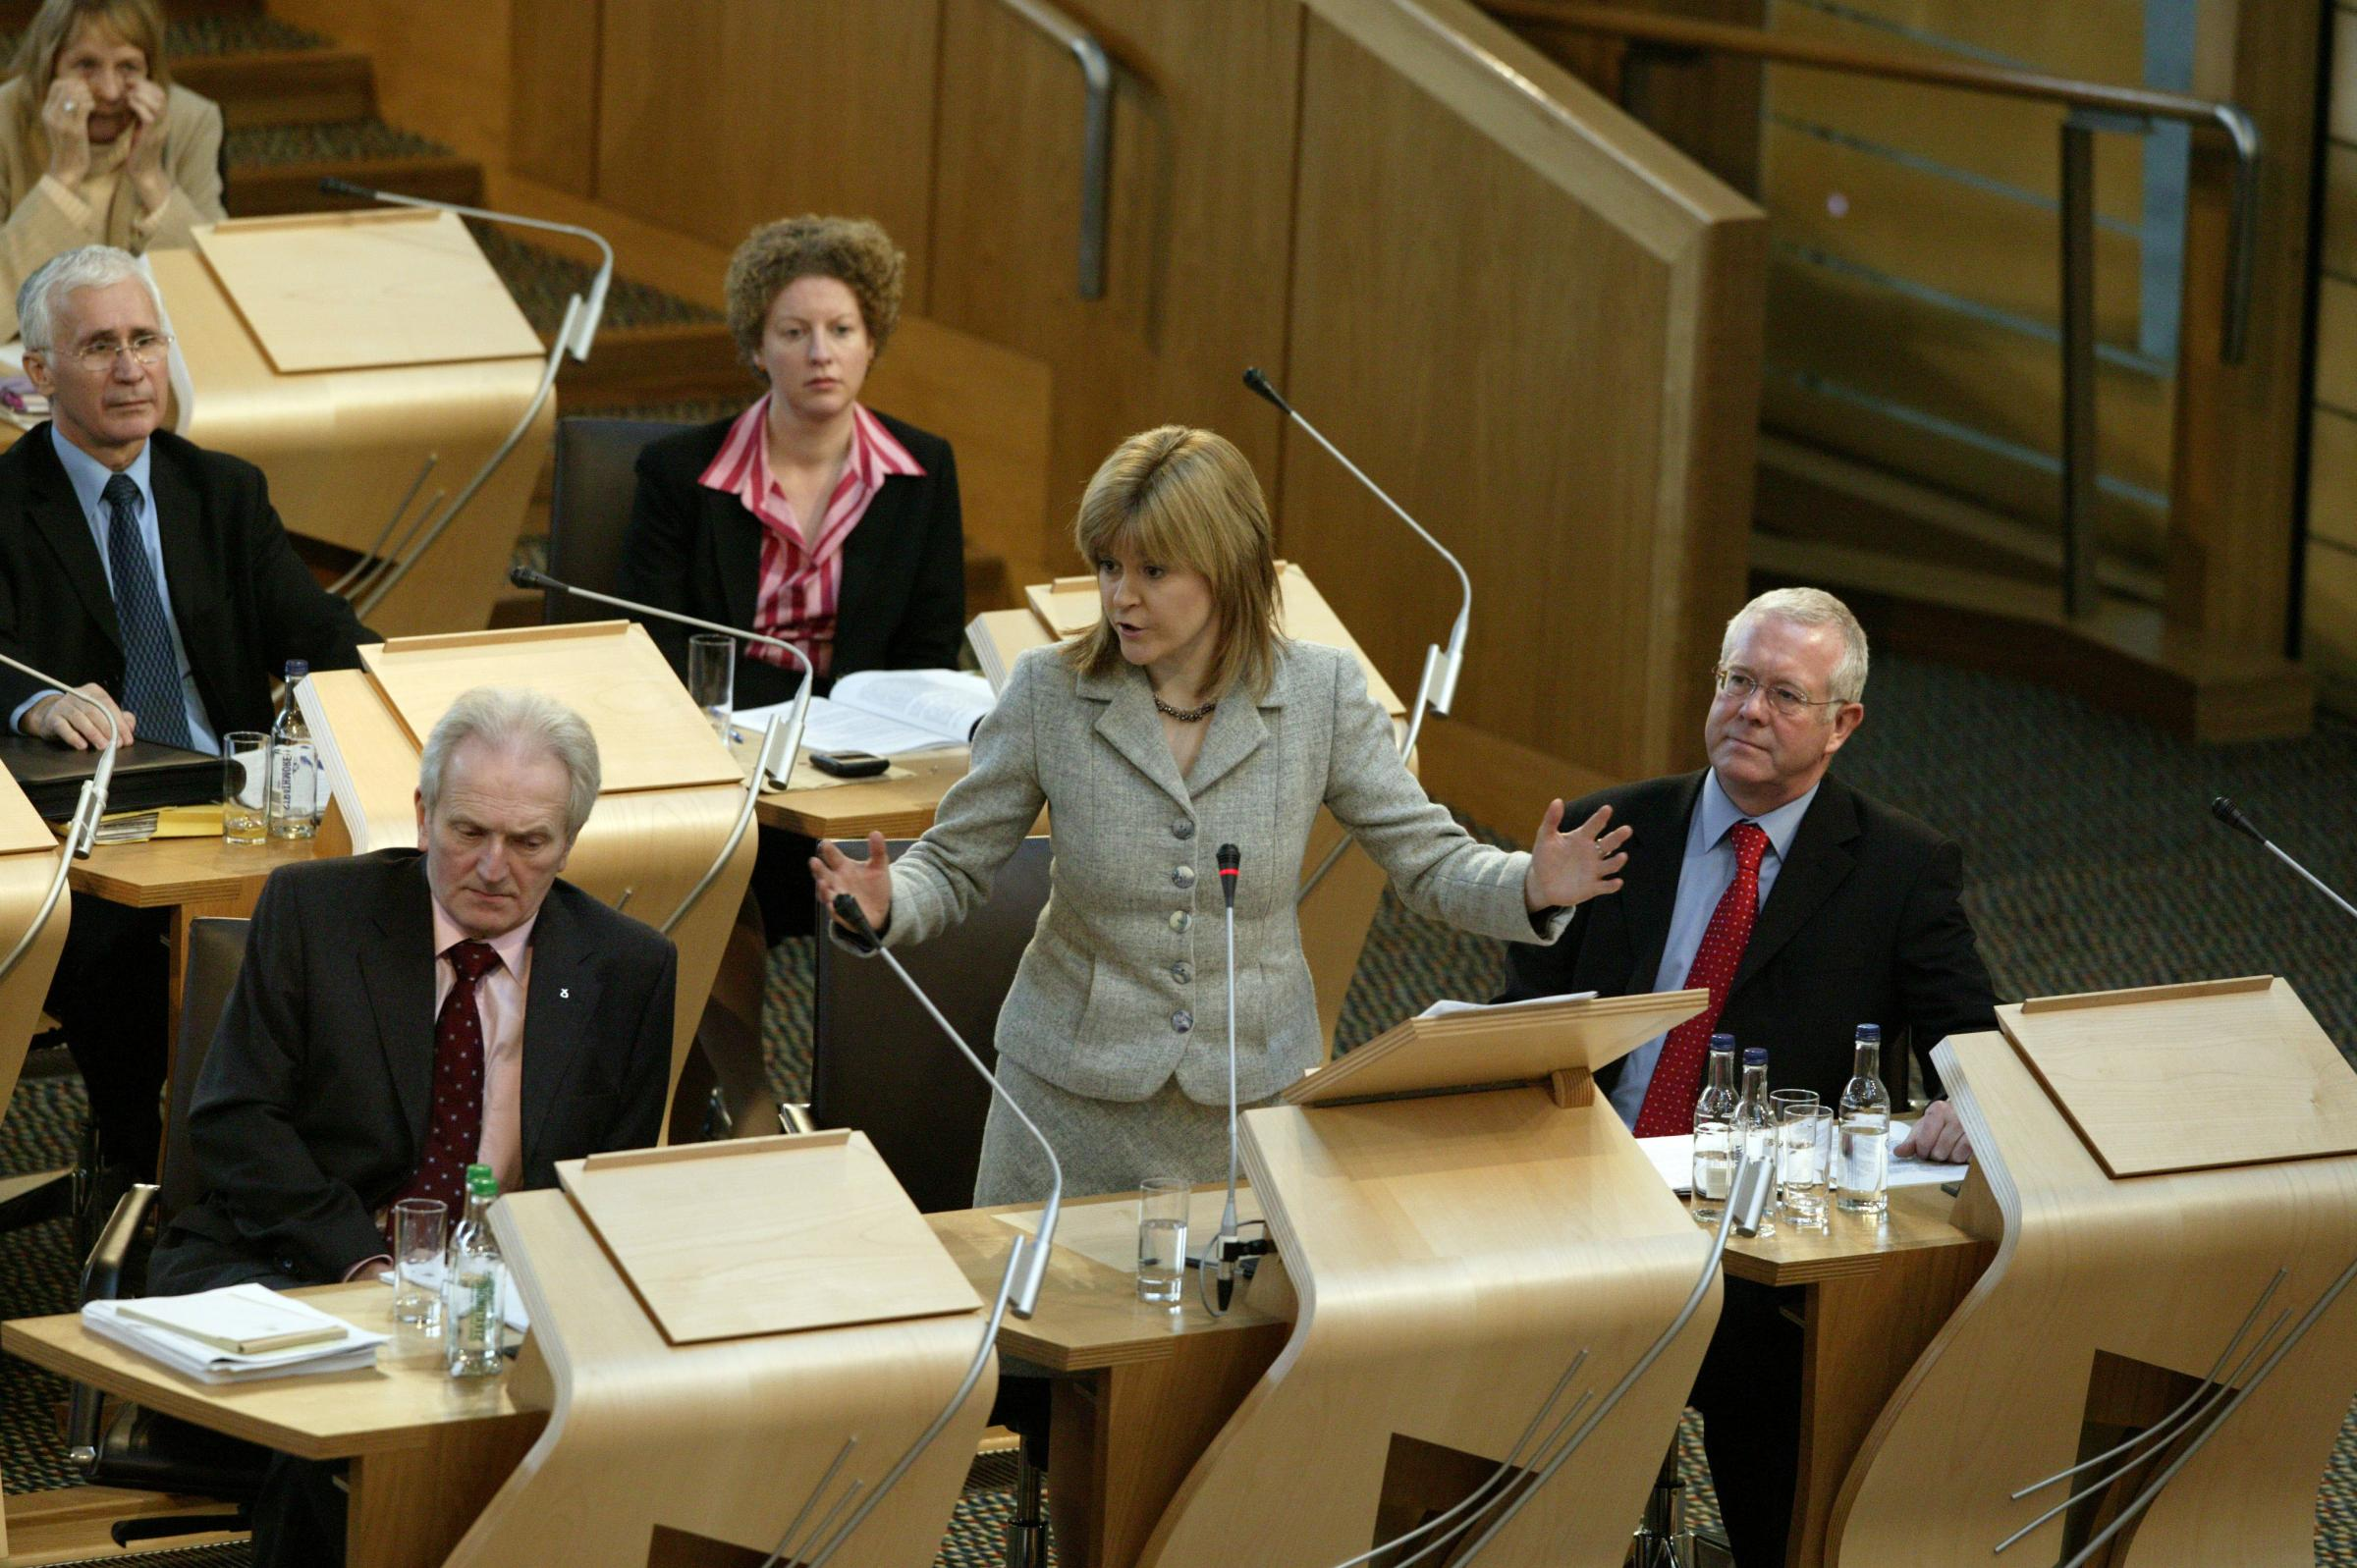 NICOLA STURGEON MSP SPEAKING DURING A PLENARY SESSION IN THE DEBATING CHAMBER.PIC-ANDREW COWAN/SCOTTISH PARLIAMENTPHOTOGRAPH (C) 2006 SCOTTISH PARLIAMENTARY CORPORATE BODY. THIS IMAGE MUST NOT BE REPRODUCED WITHOUT PRIOR WRITTEN PERMISSION. PLEASE CONT